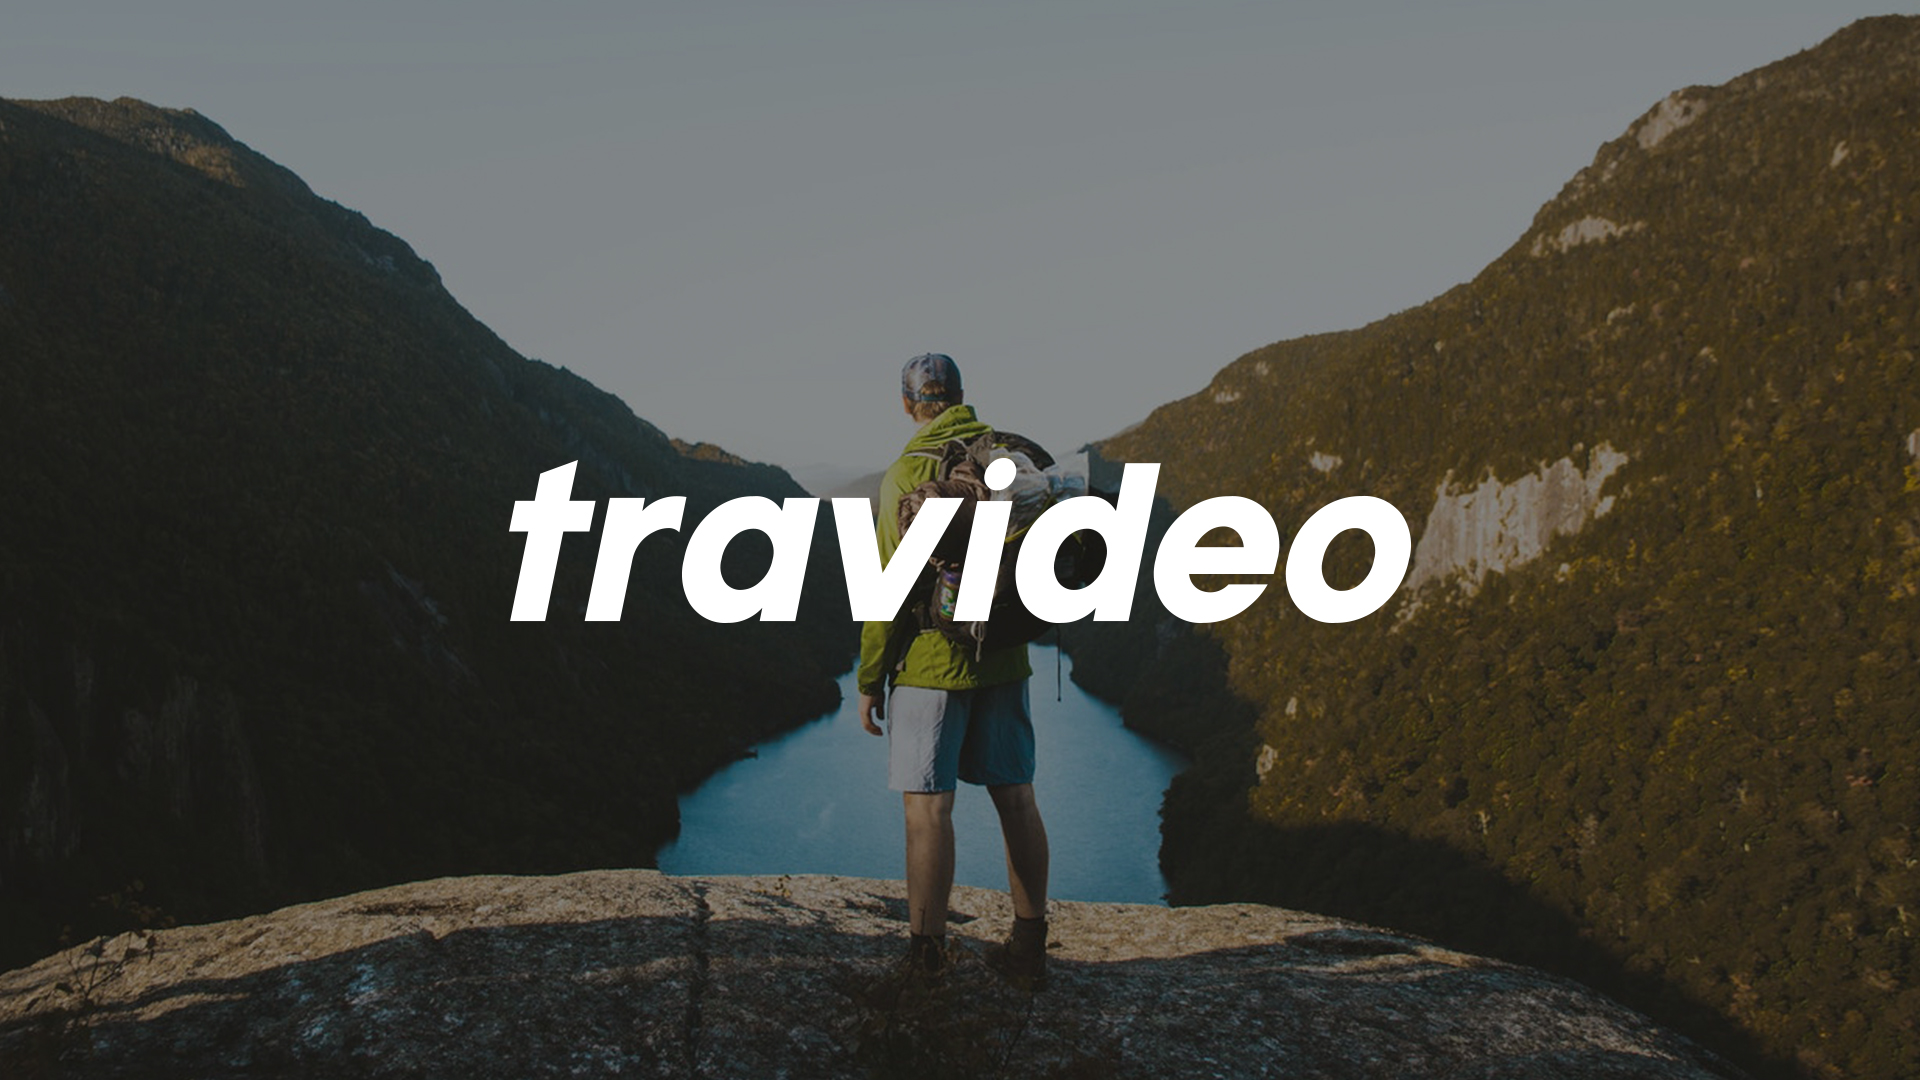 Travideo brand